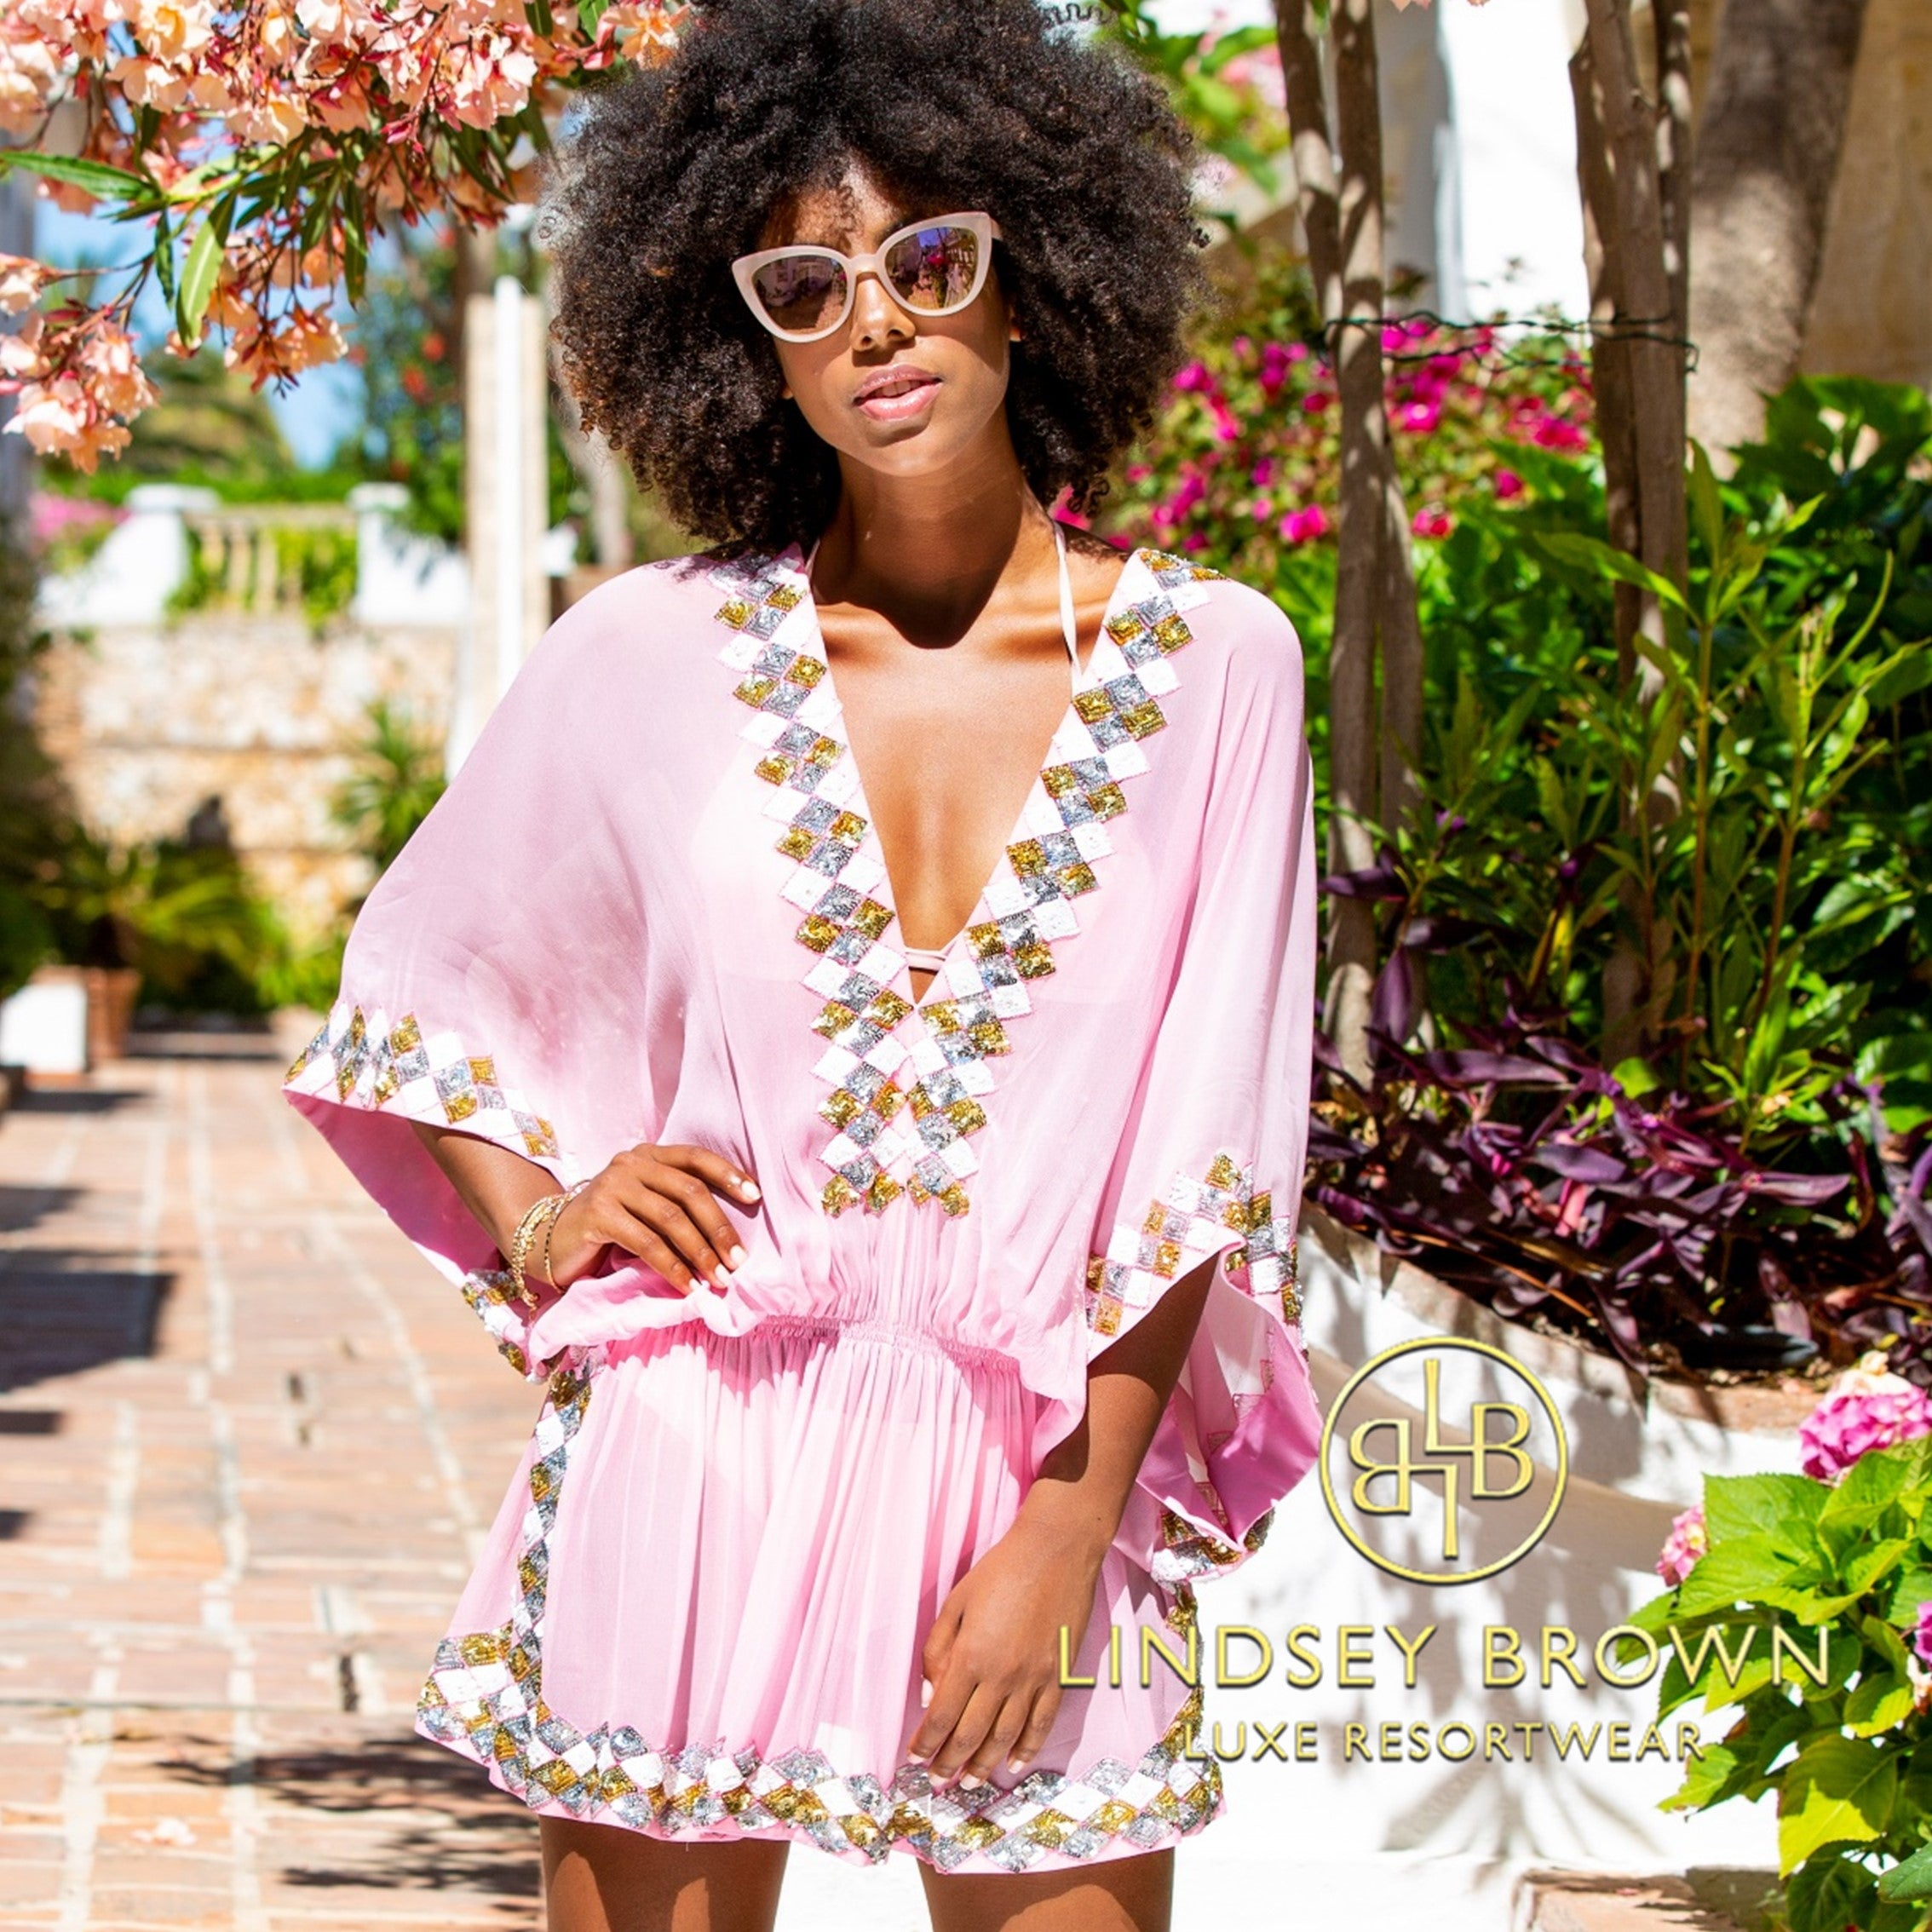 Shop pink silk designer kaftans to wear in the bahamas by Lindsey Brown